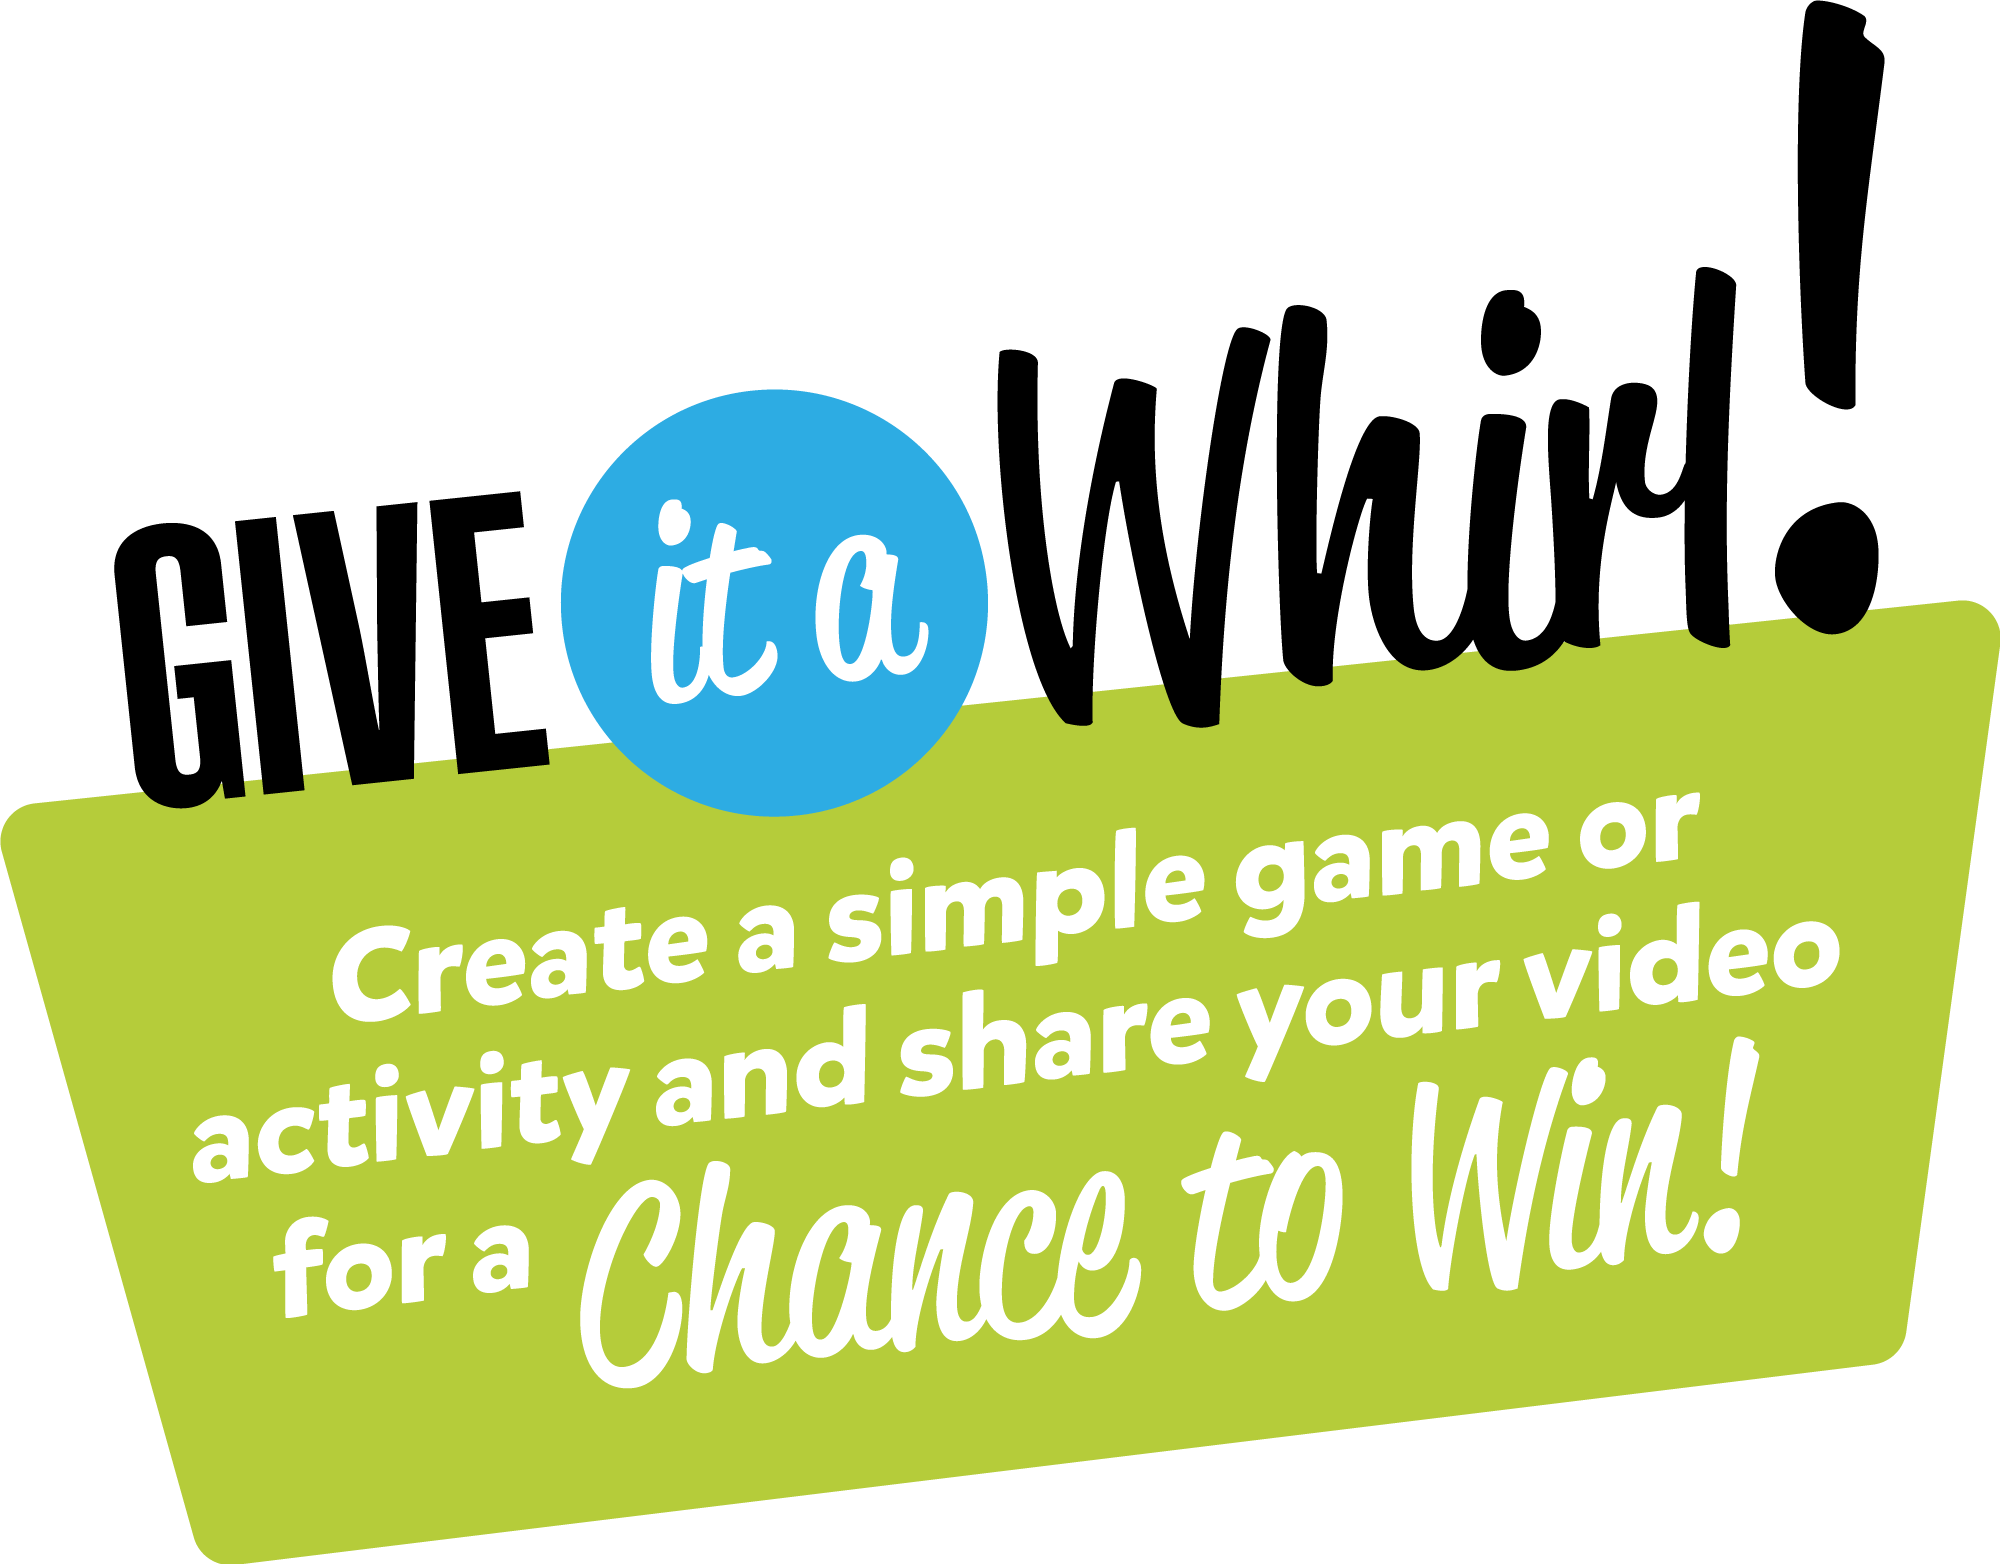 Give it a Whirl! Create a simple game or activity and share your video for a Chance to Win!